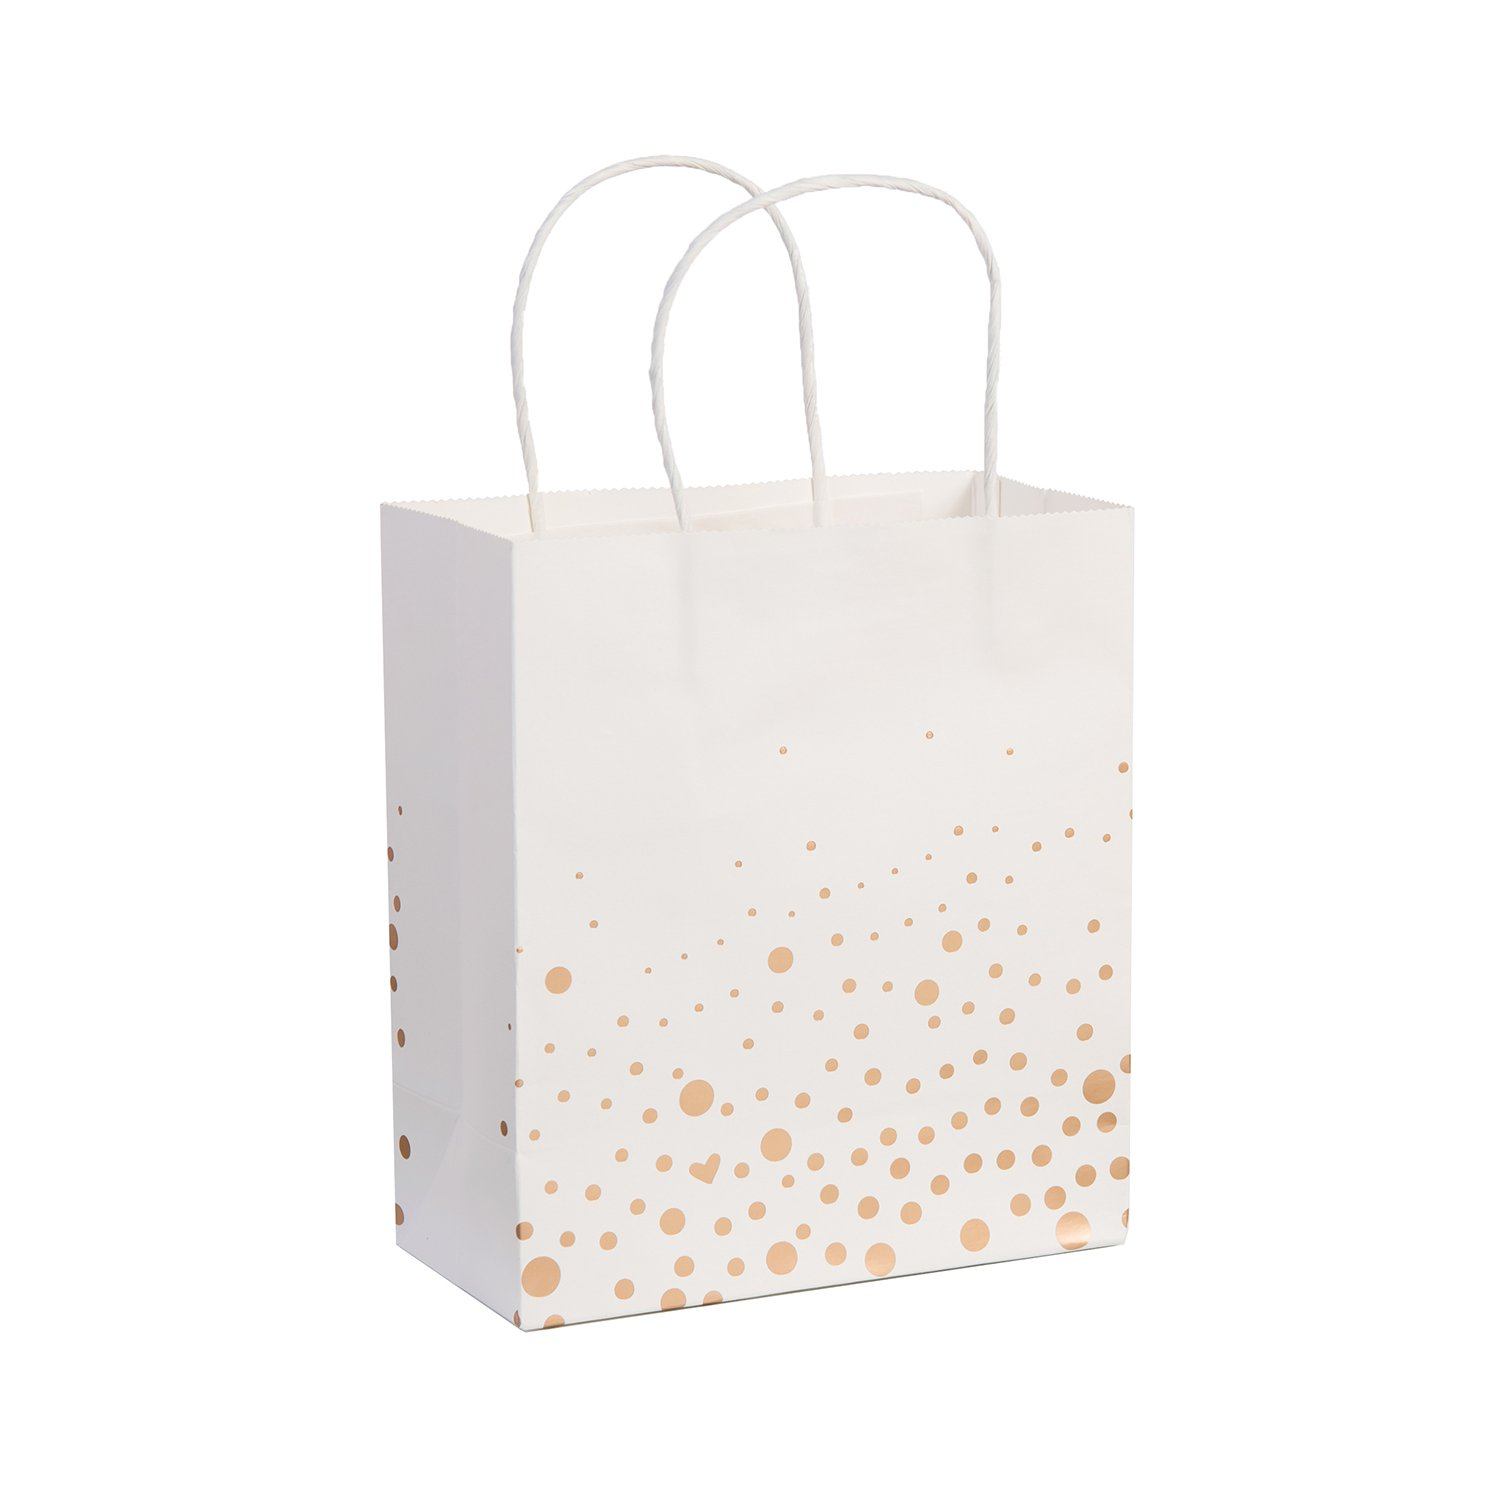 Ling's Moment Set of 12 Rose Gold Polka Dots White Gift Bags for Wedding Hotel Guests Bridal Party Baby Shower Gifts Bags